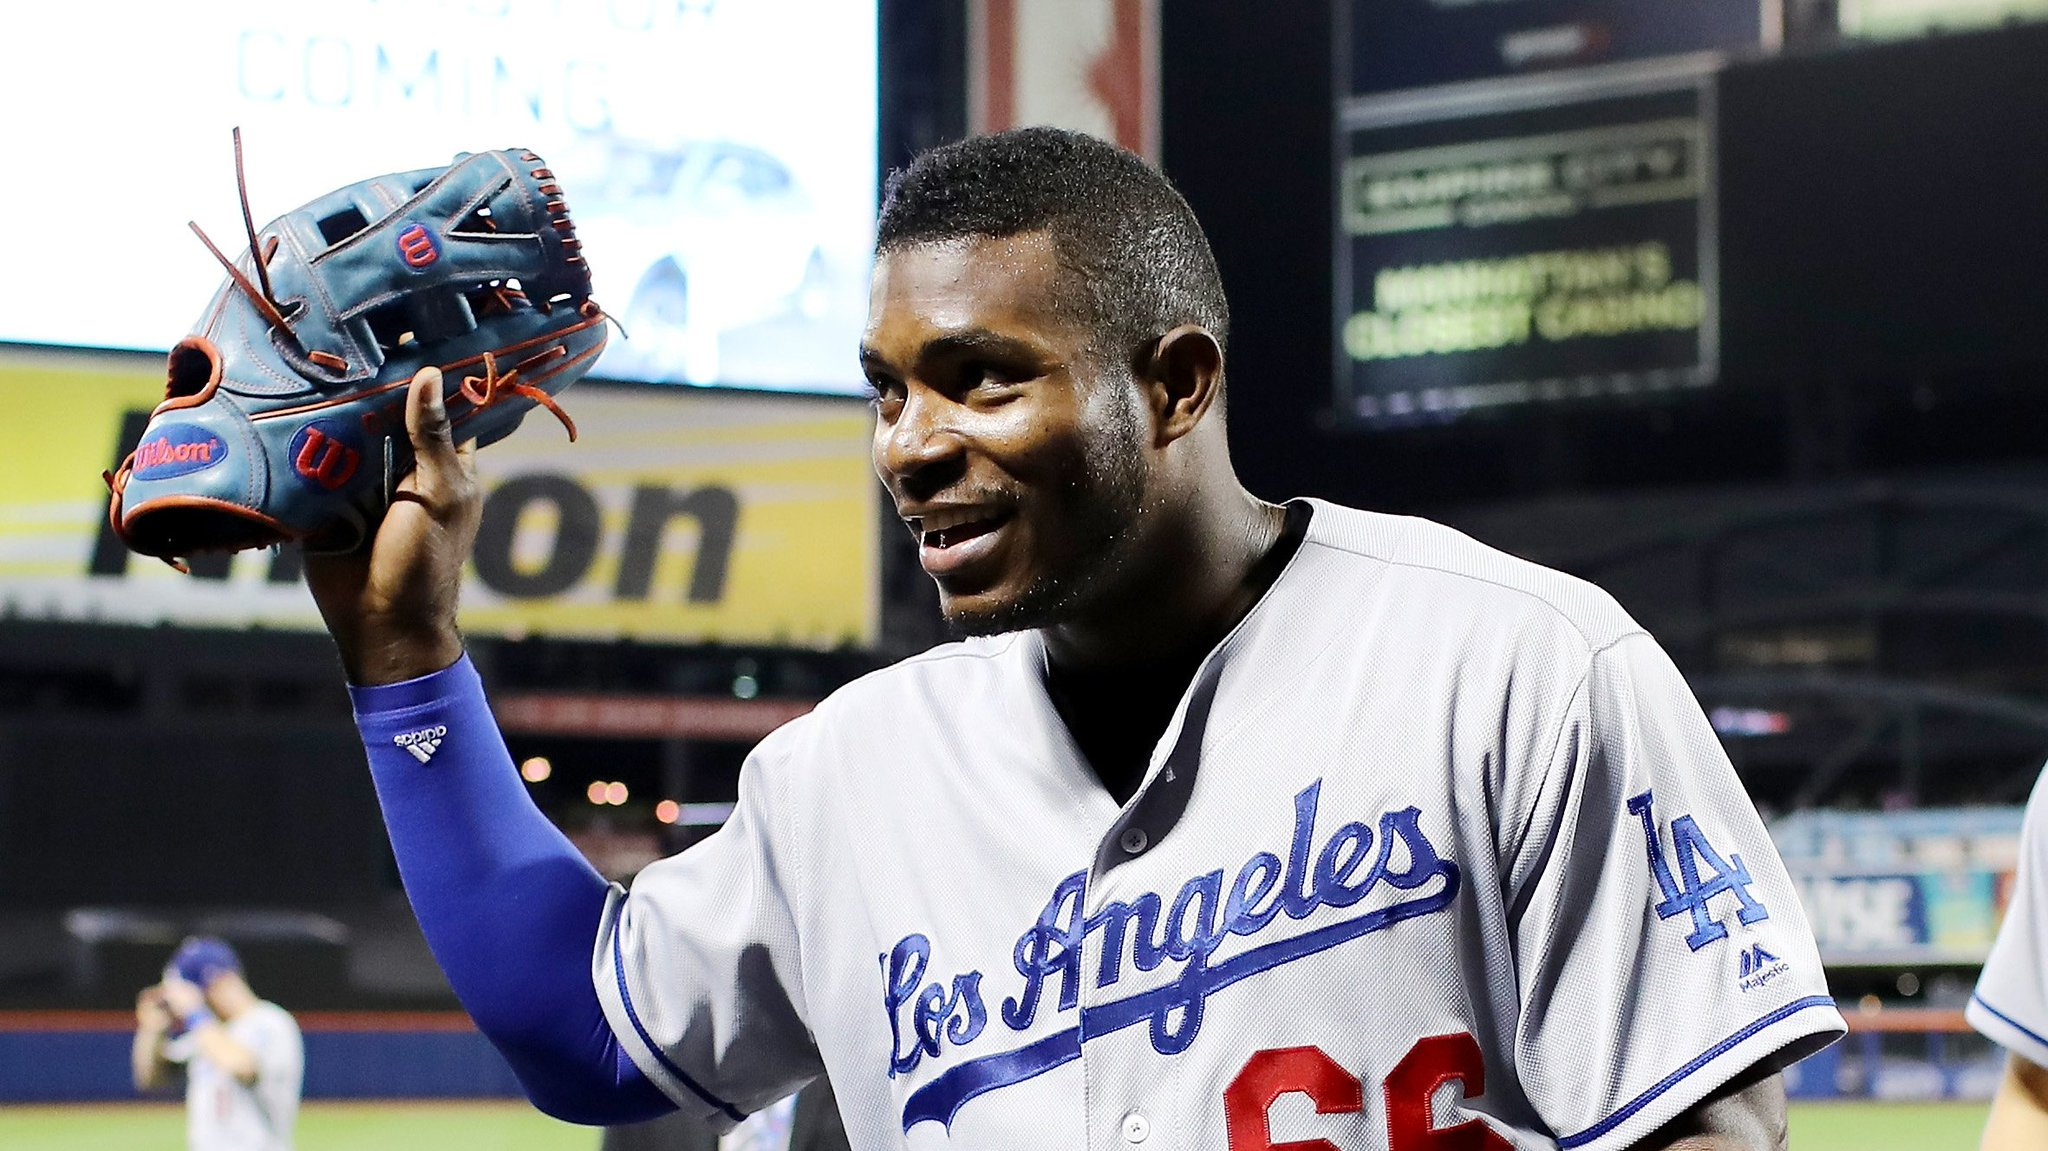 Persistence pays off for a fan in search of @YasielPuig's autograph. https://t.co/45MTUrS25J https://t.co/r1XyLwtgE1